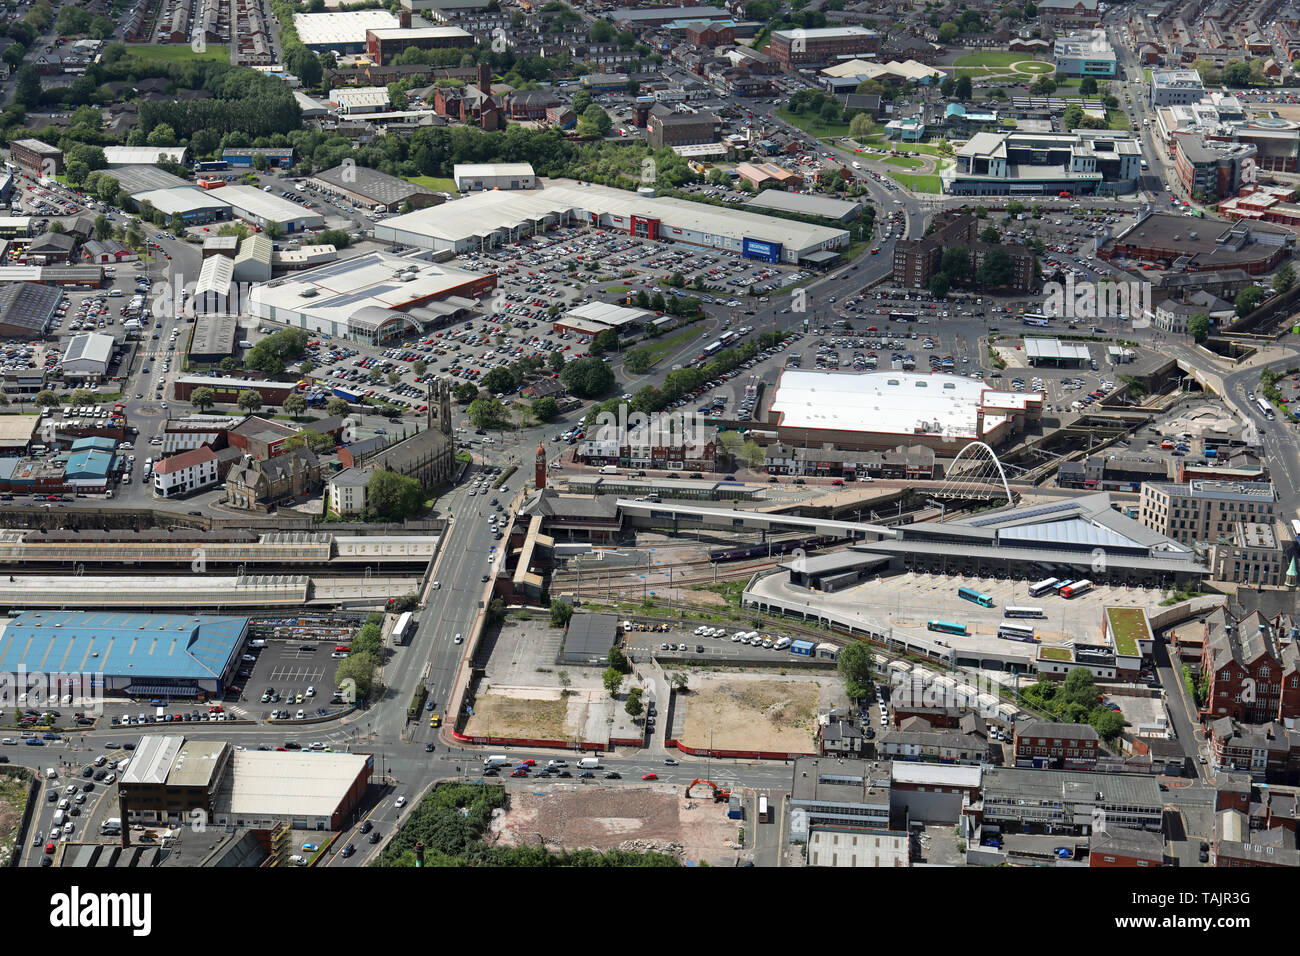 aerial view of Bolton town centre looking west down the A579 between the railway & bus stations towards Bolton Shopping Park in the distance - Stock Image